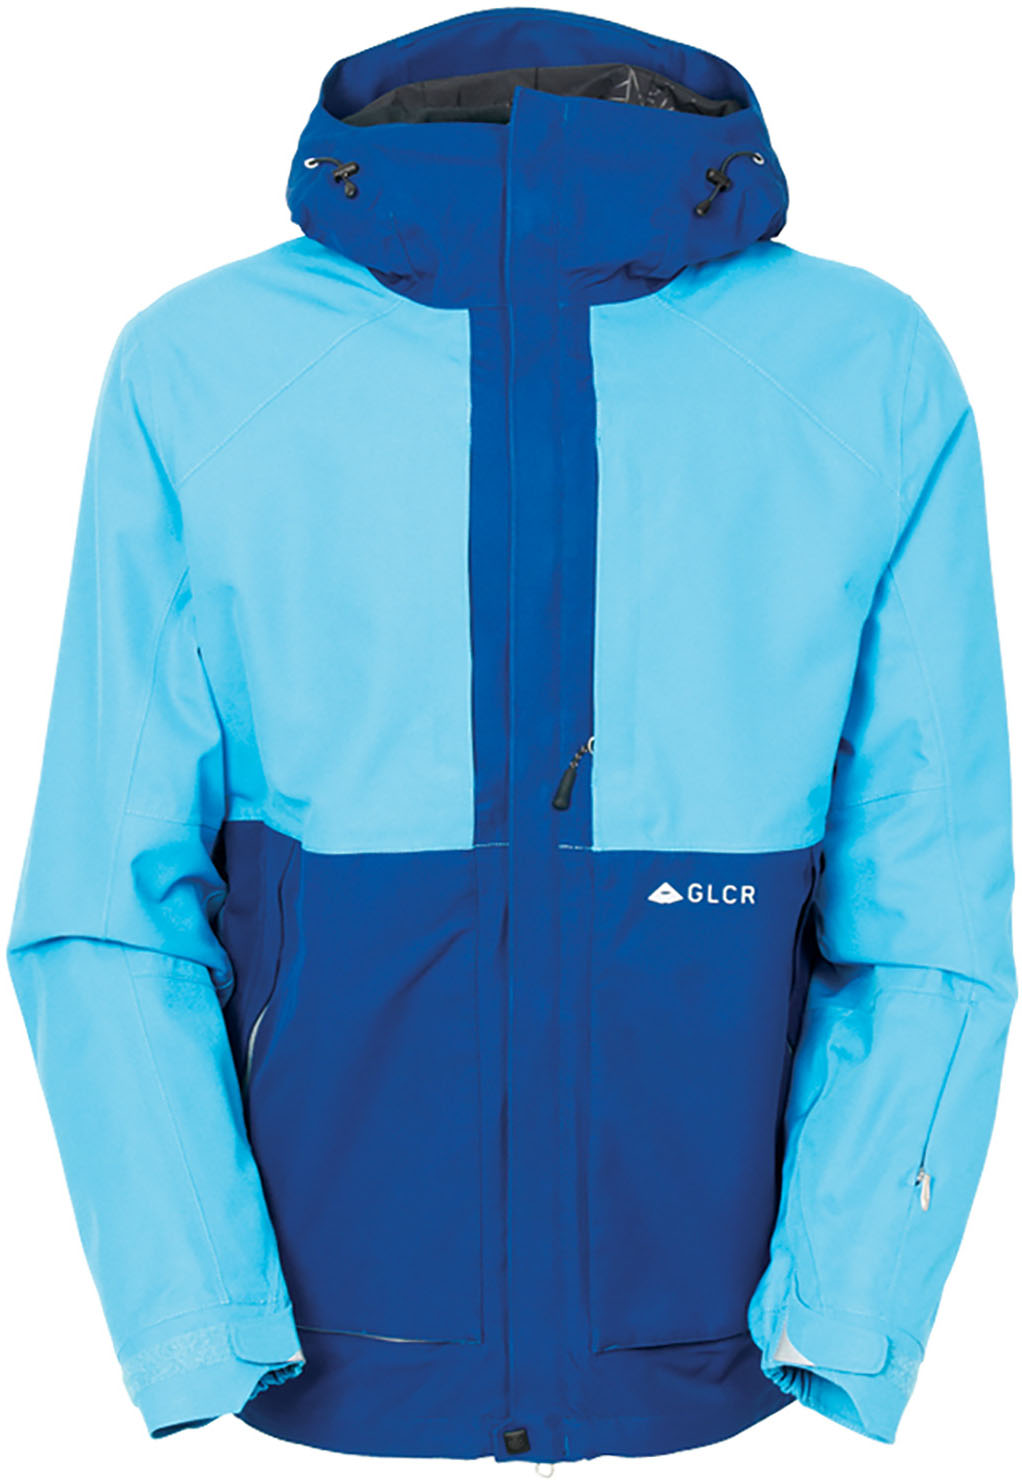 686 glcr vector jacket review the good ride